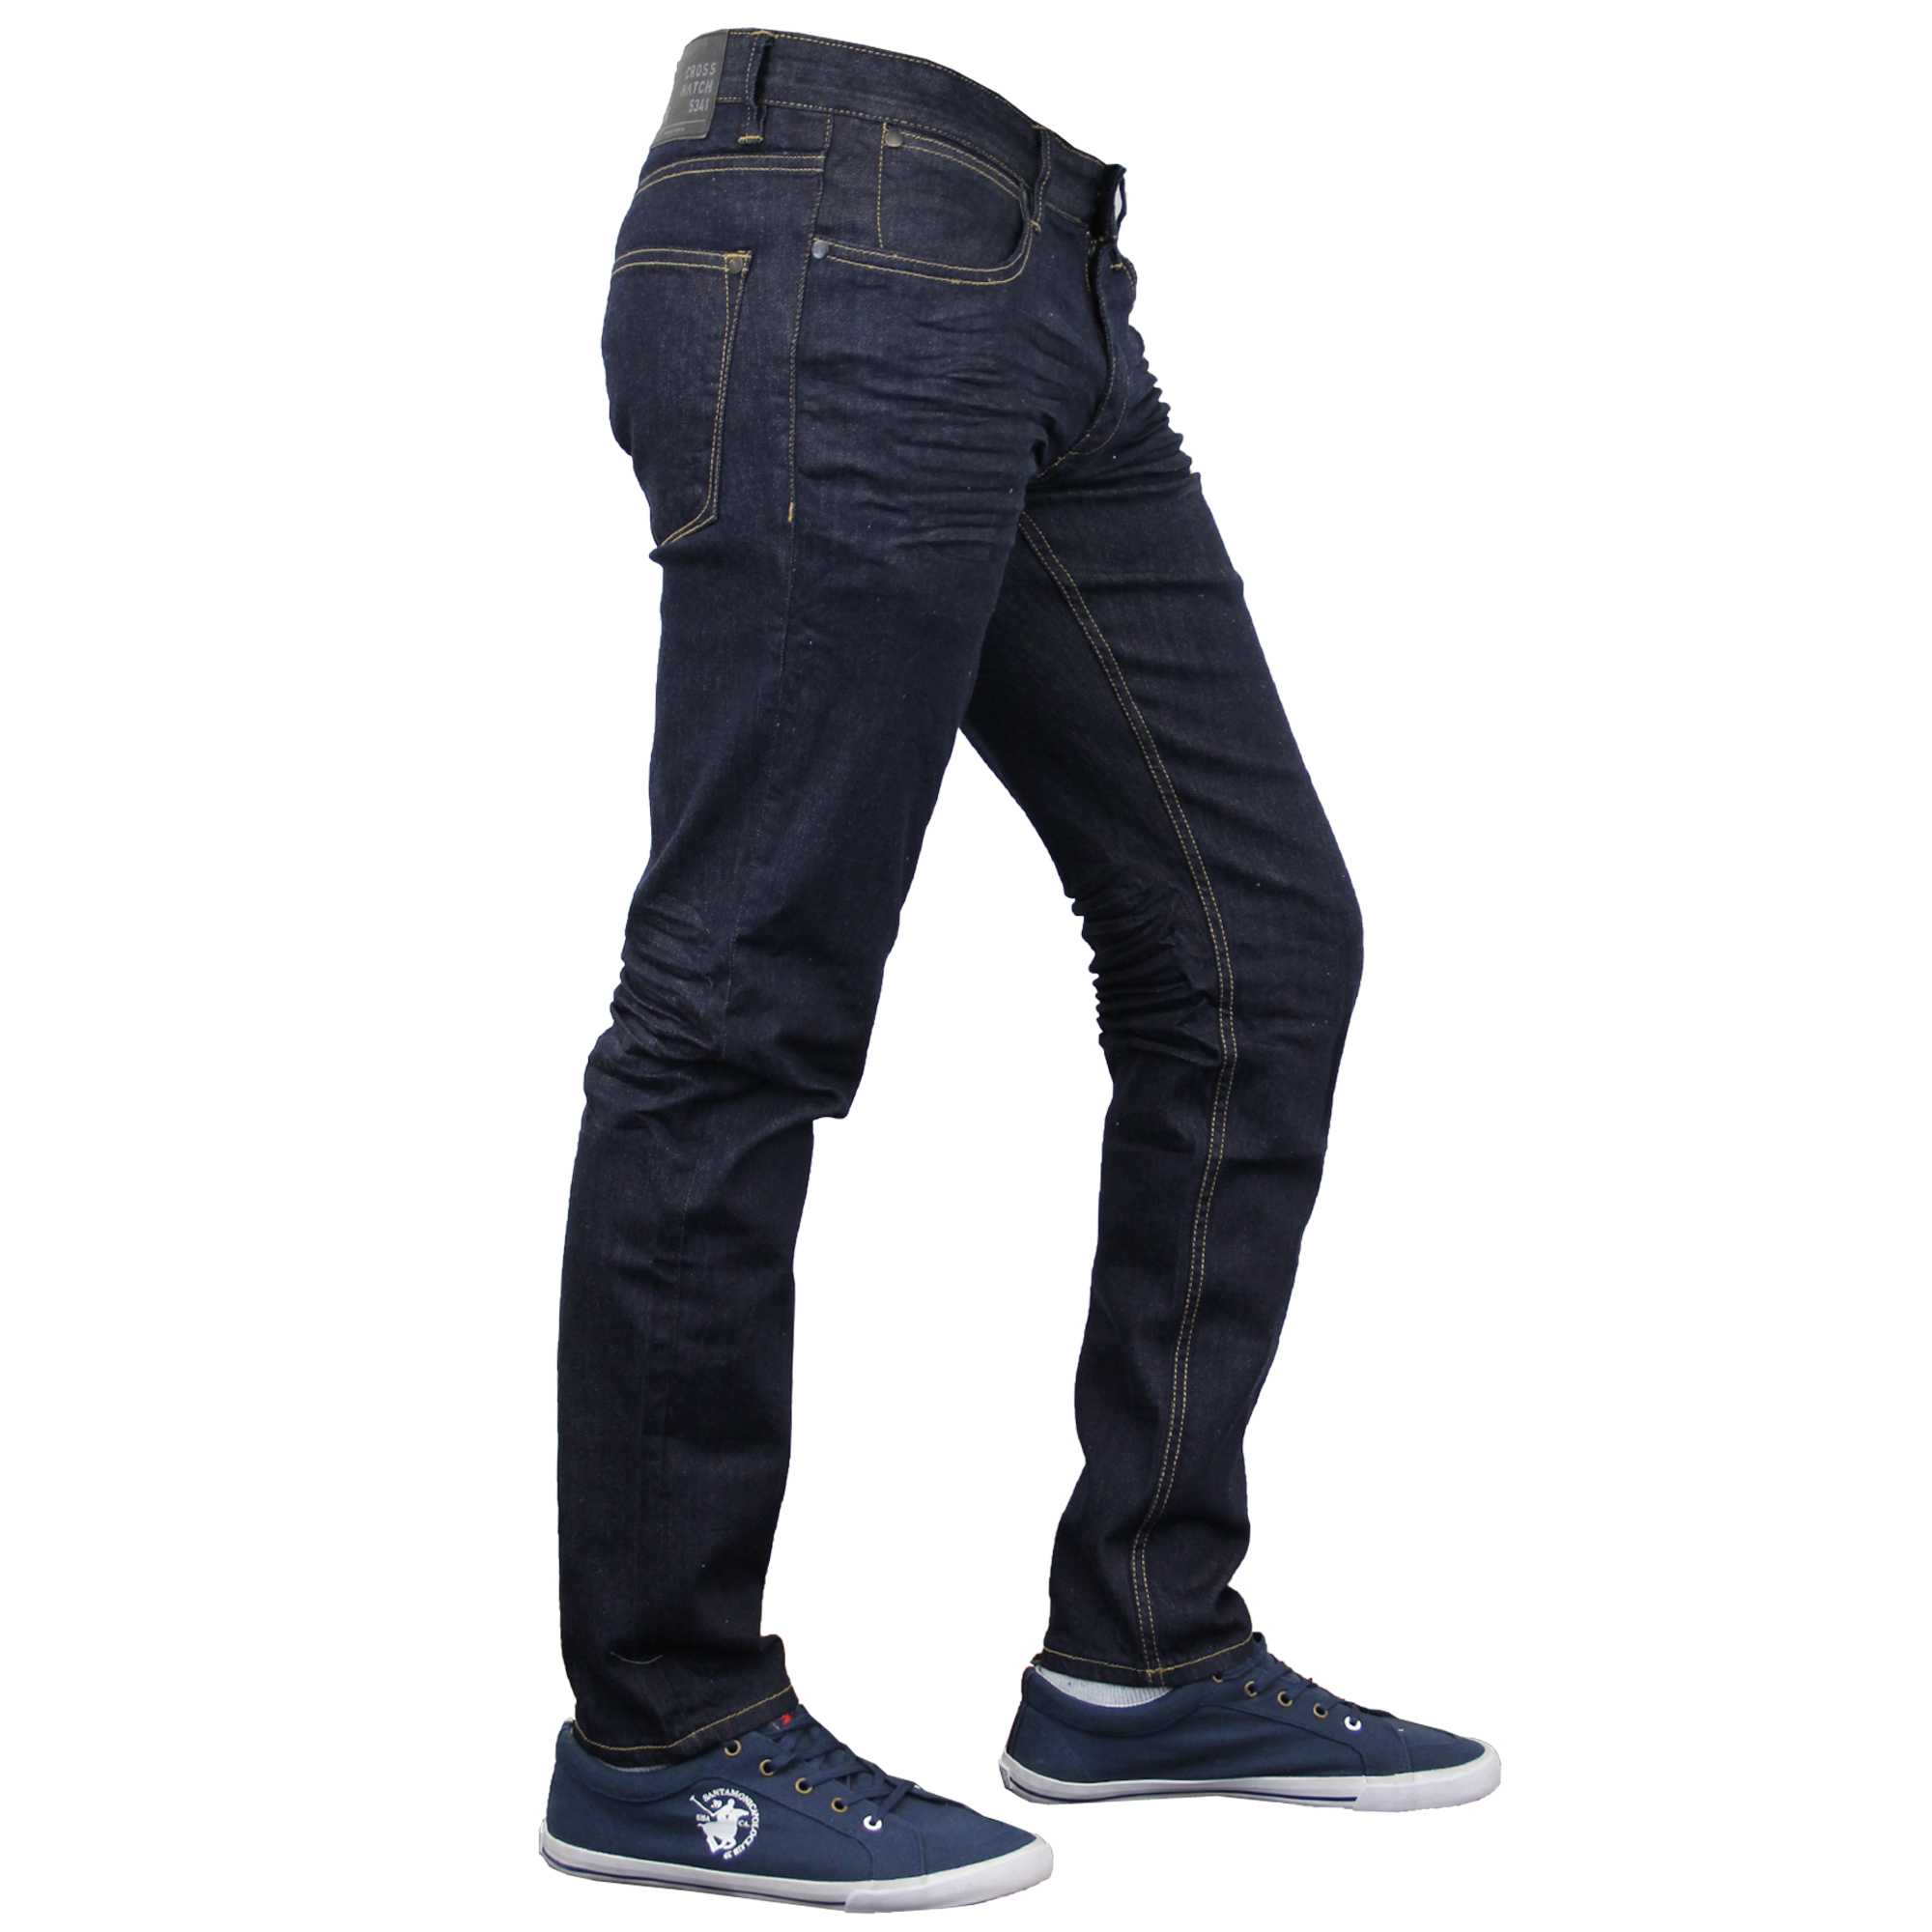 Jun 14, · Trousers are an item of clothing worn on the lower part of the body and cover both legs separately. For centuries, trousers have remained the standard lower-body clothing item for males but, by the late 20th century, trousers had become a popular clothing item for females as well.